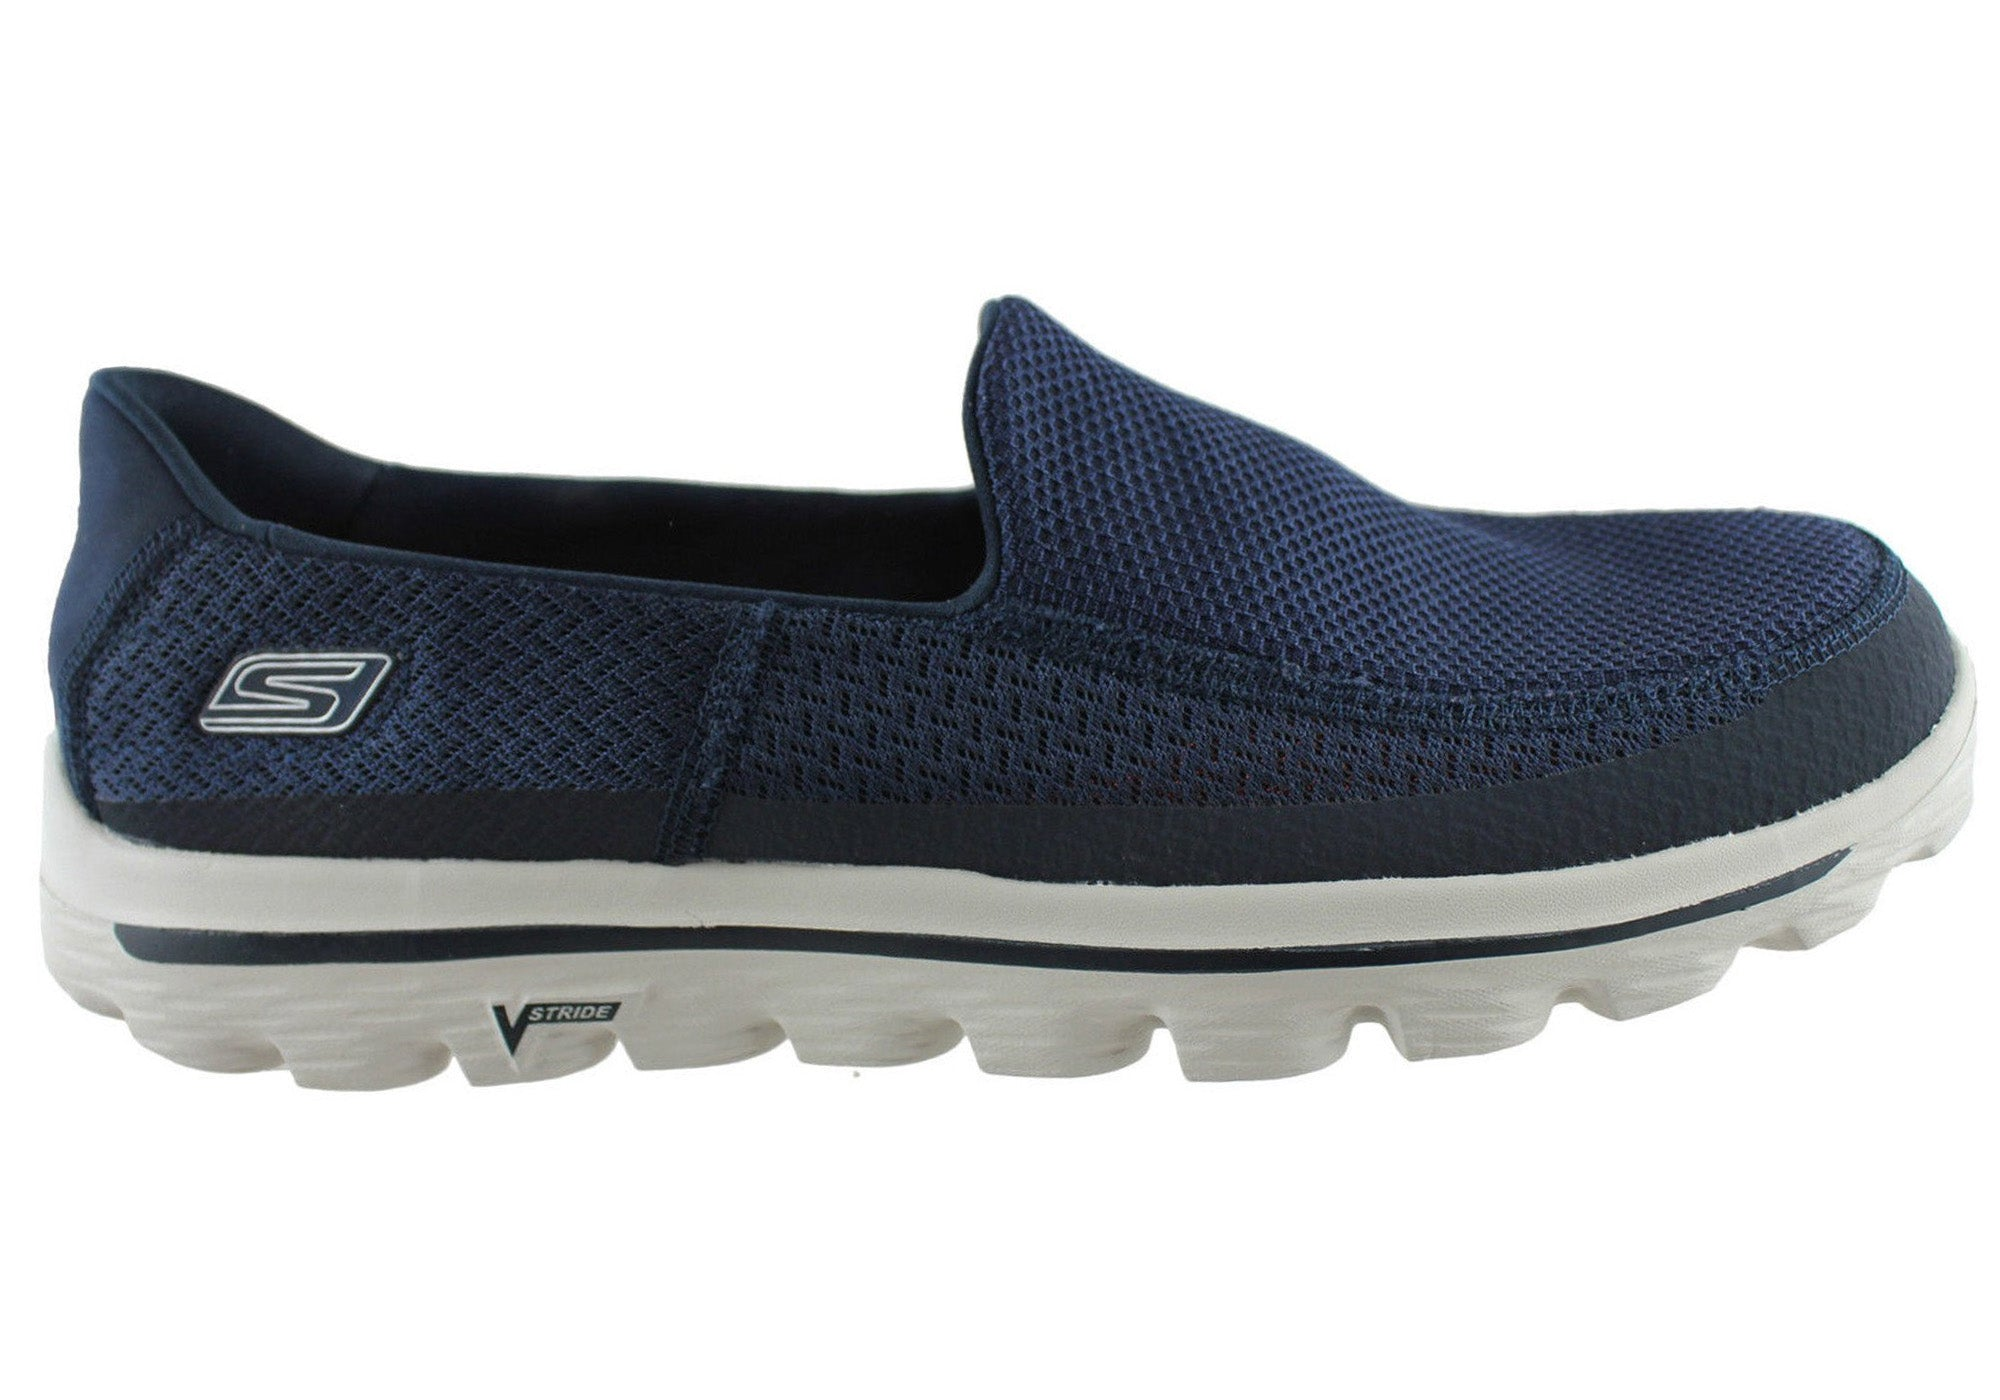 Skechers Go Walk 2 Mens Comfortable